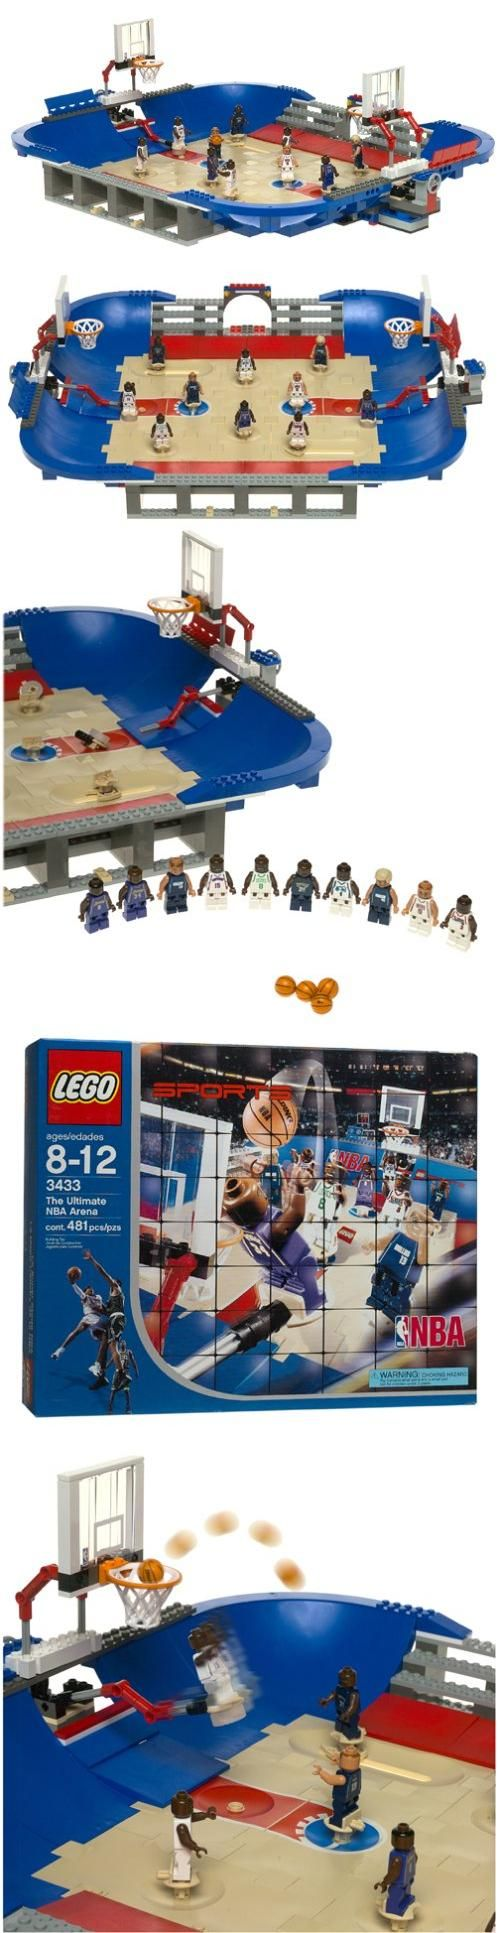 LEGO Sports: NBA Ultimate Arena, Great for young basketball fans who love to build and play, the LEGO Ultimate NBA Arena features 10 collectible mini LEGO figures, including Jason Kidd, Allen Iverson and Antoine Walker. Move players ..., #Toys, #Building Sets